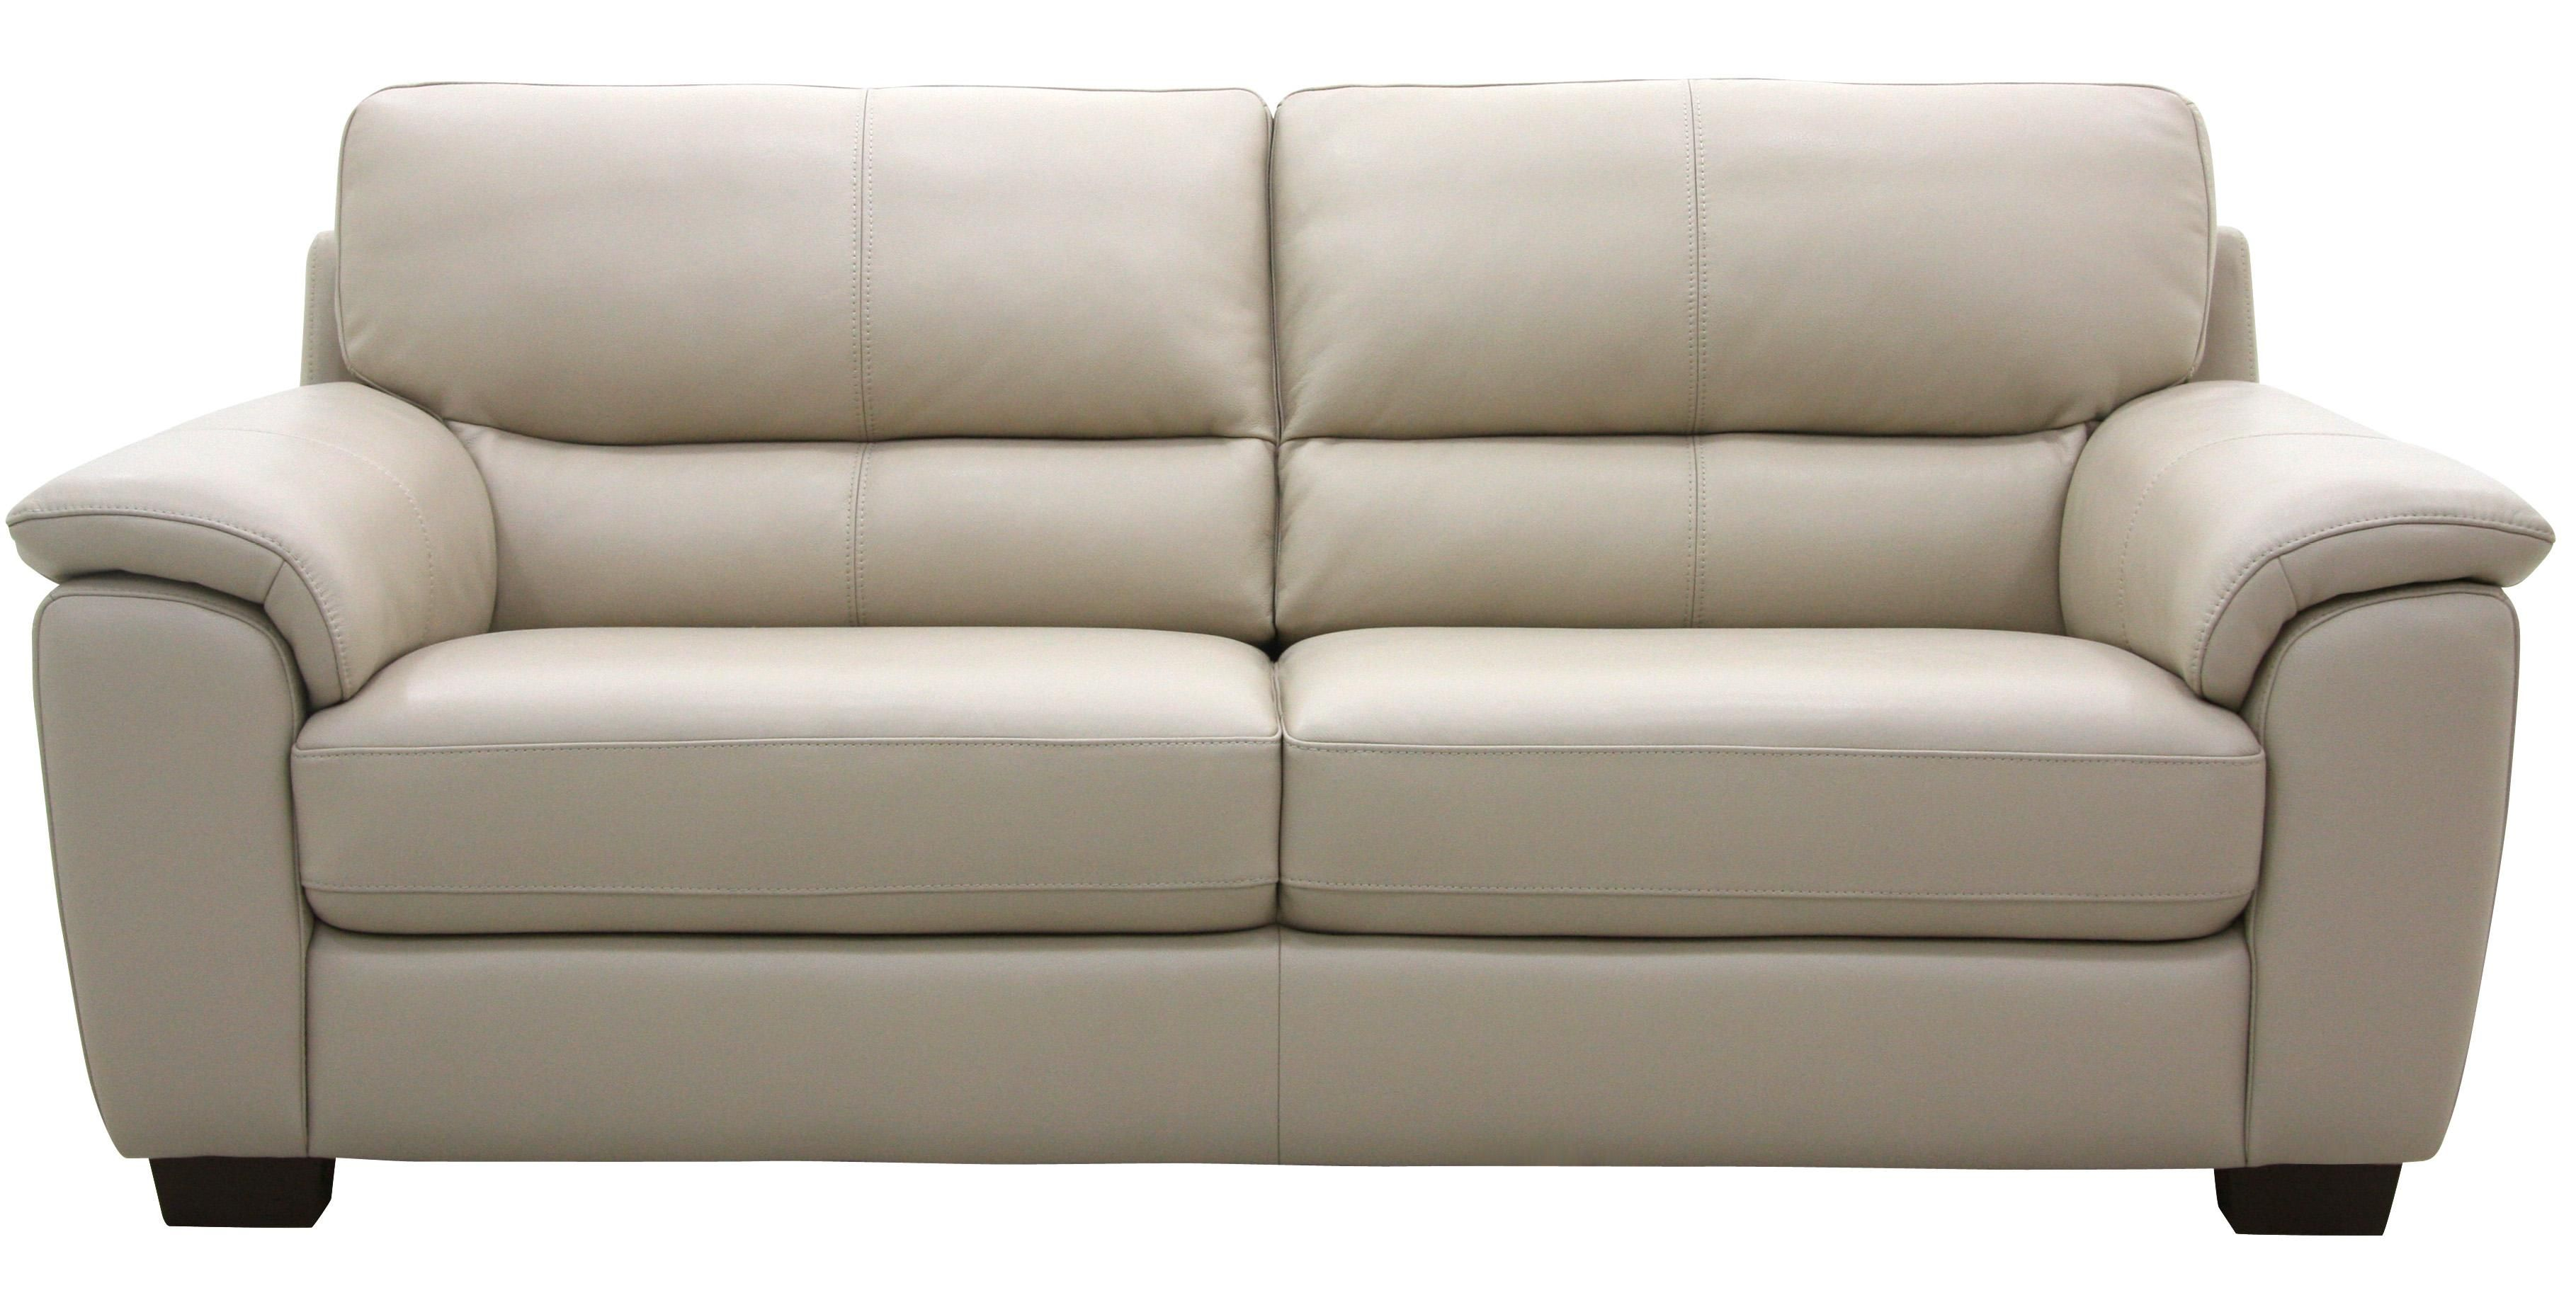 howell sofa teal colour scheme htl furniture 9170 leather collection featuring loveseat